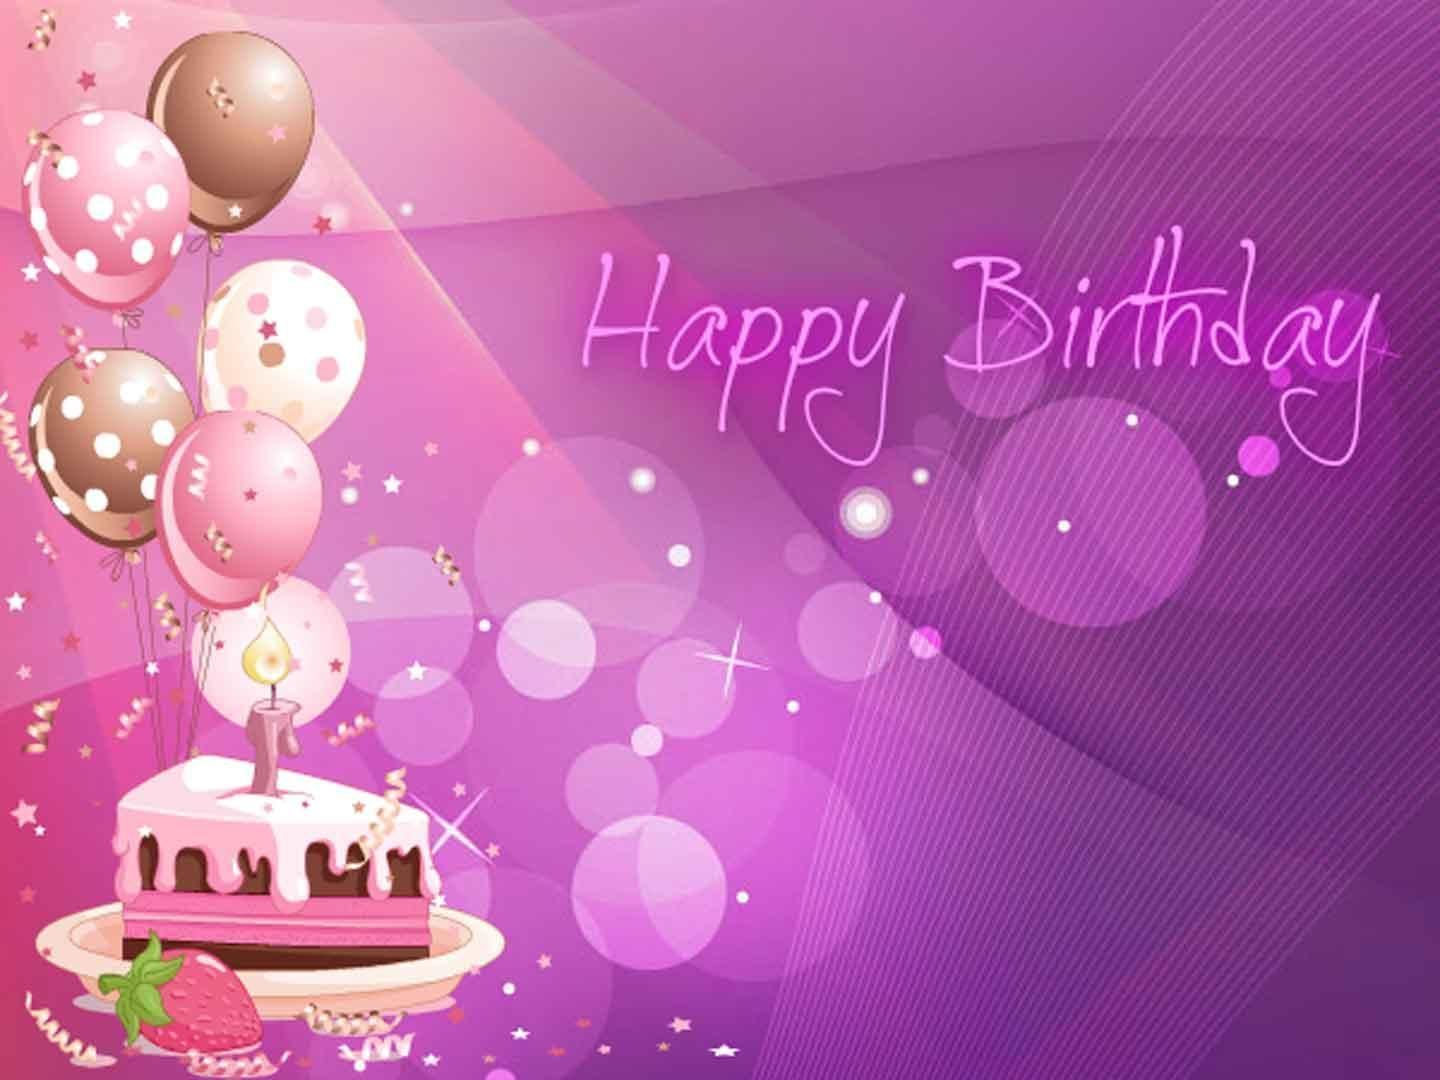 Happy Birthday Purple Photos, HQ Backgrounds | HD wallpapers ...